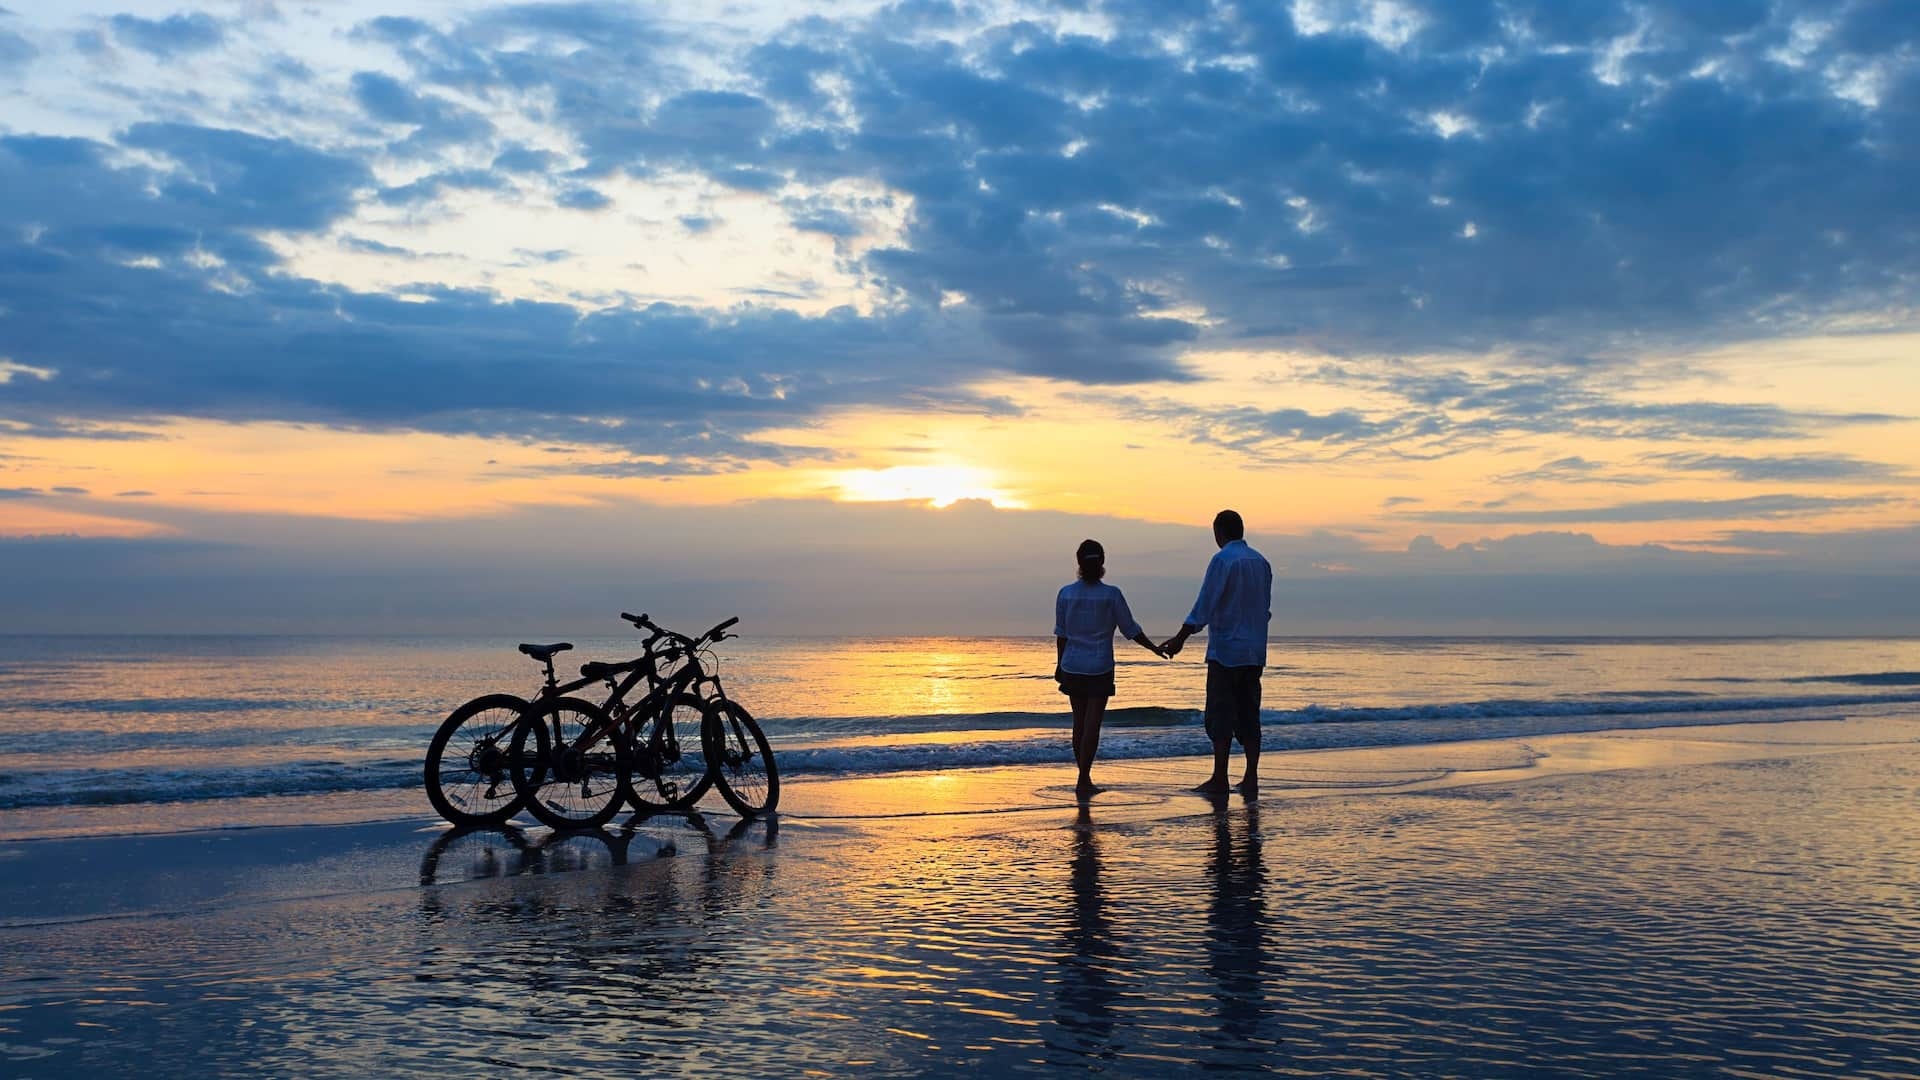 Couple on beach with bikes